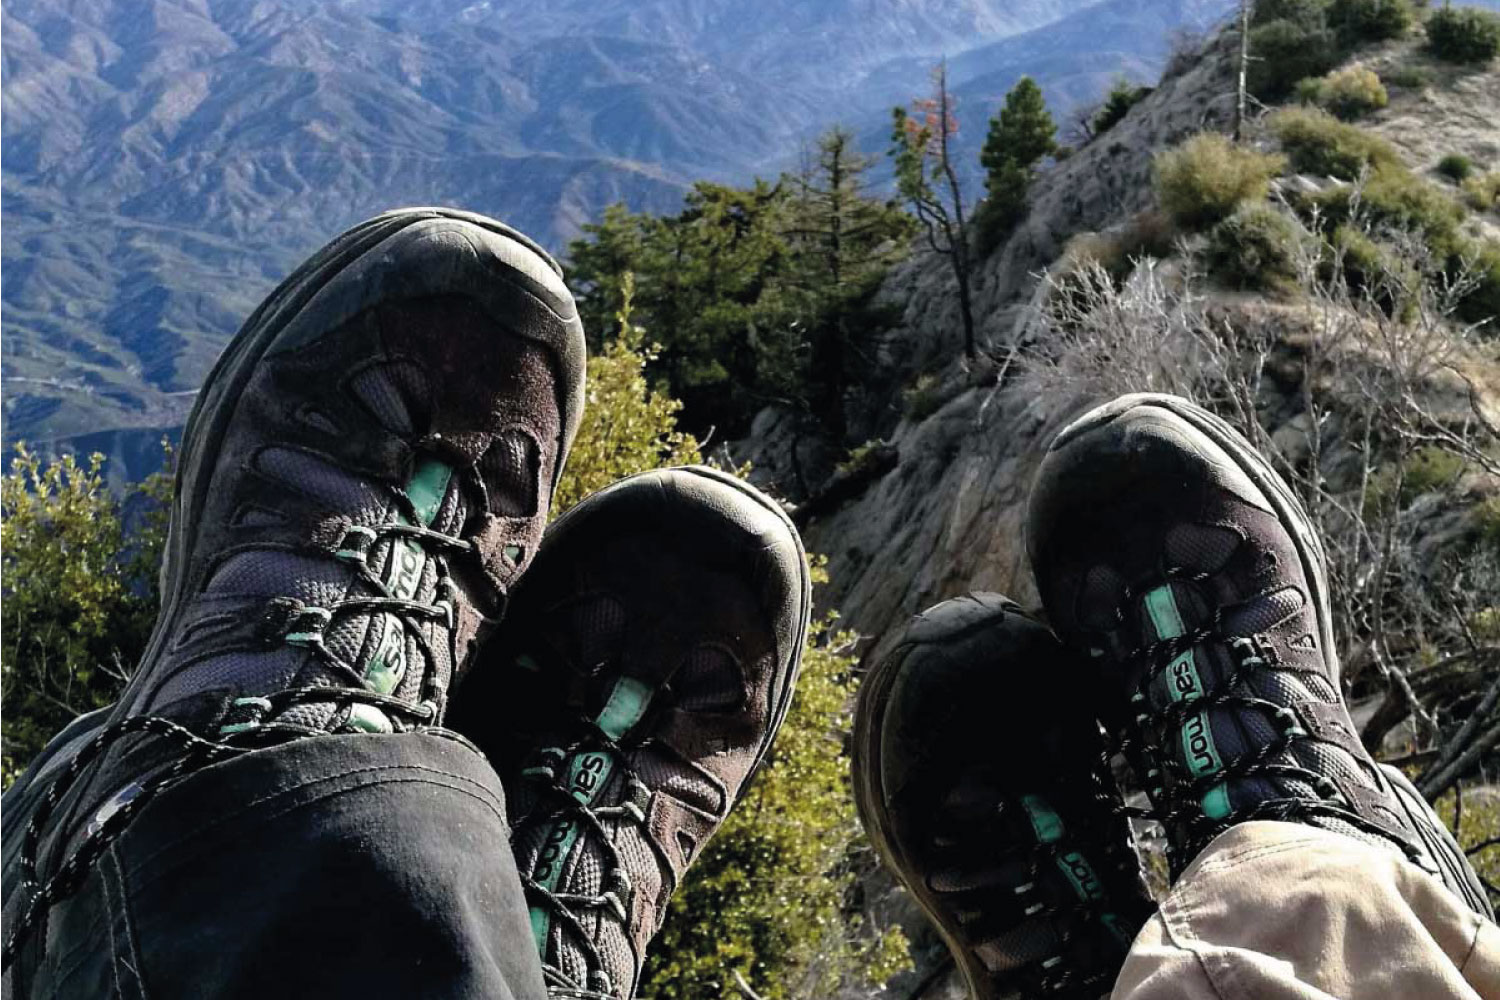 Two people wearing hiking boots sitting on top of a mountain